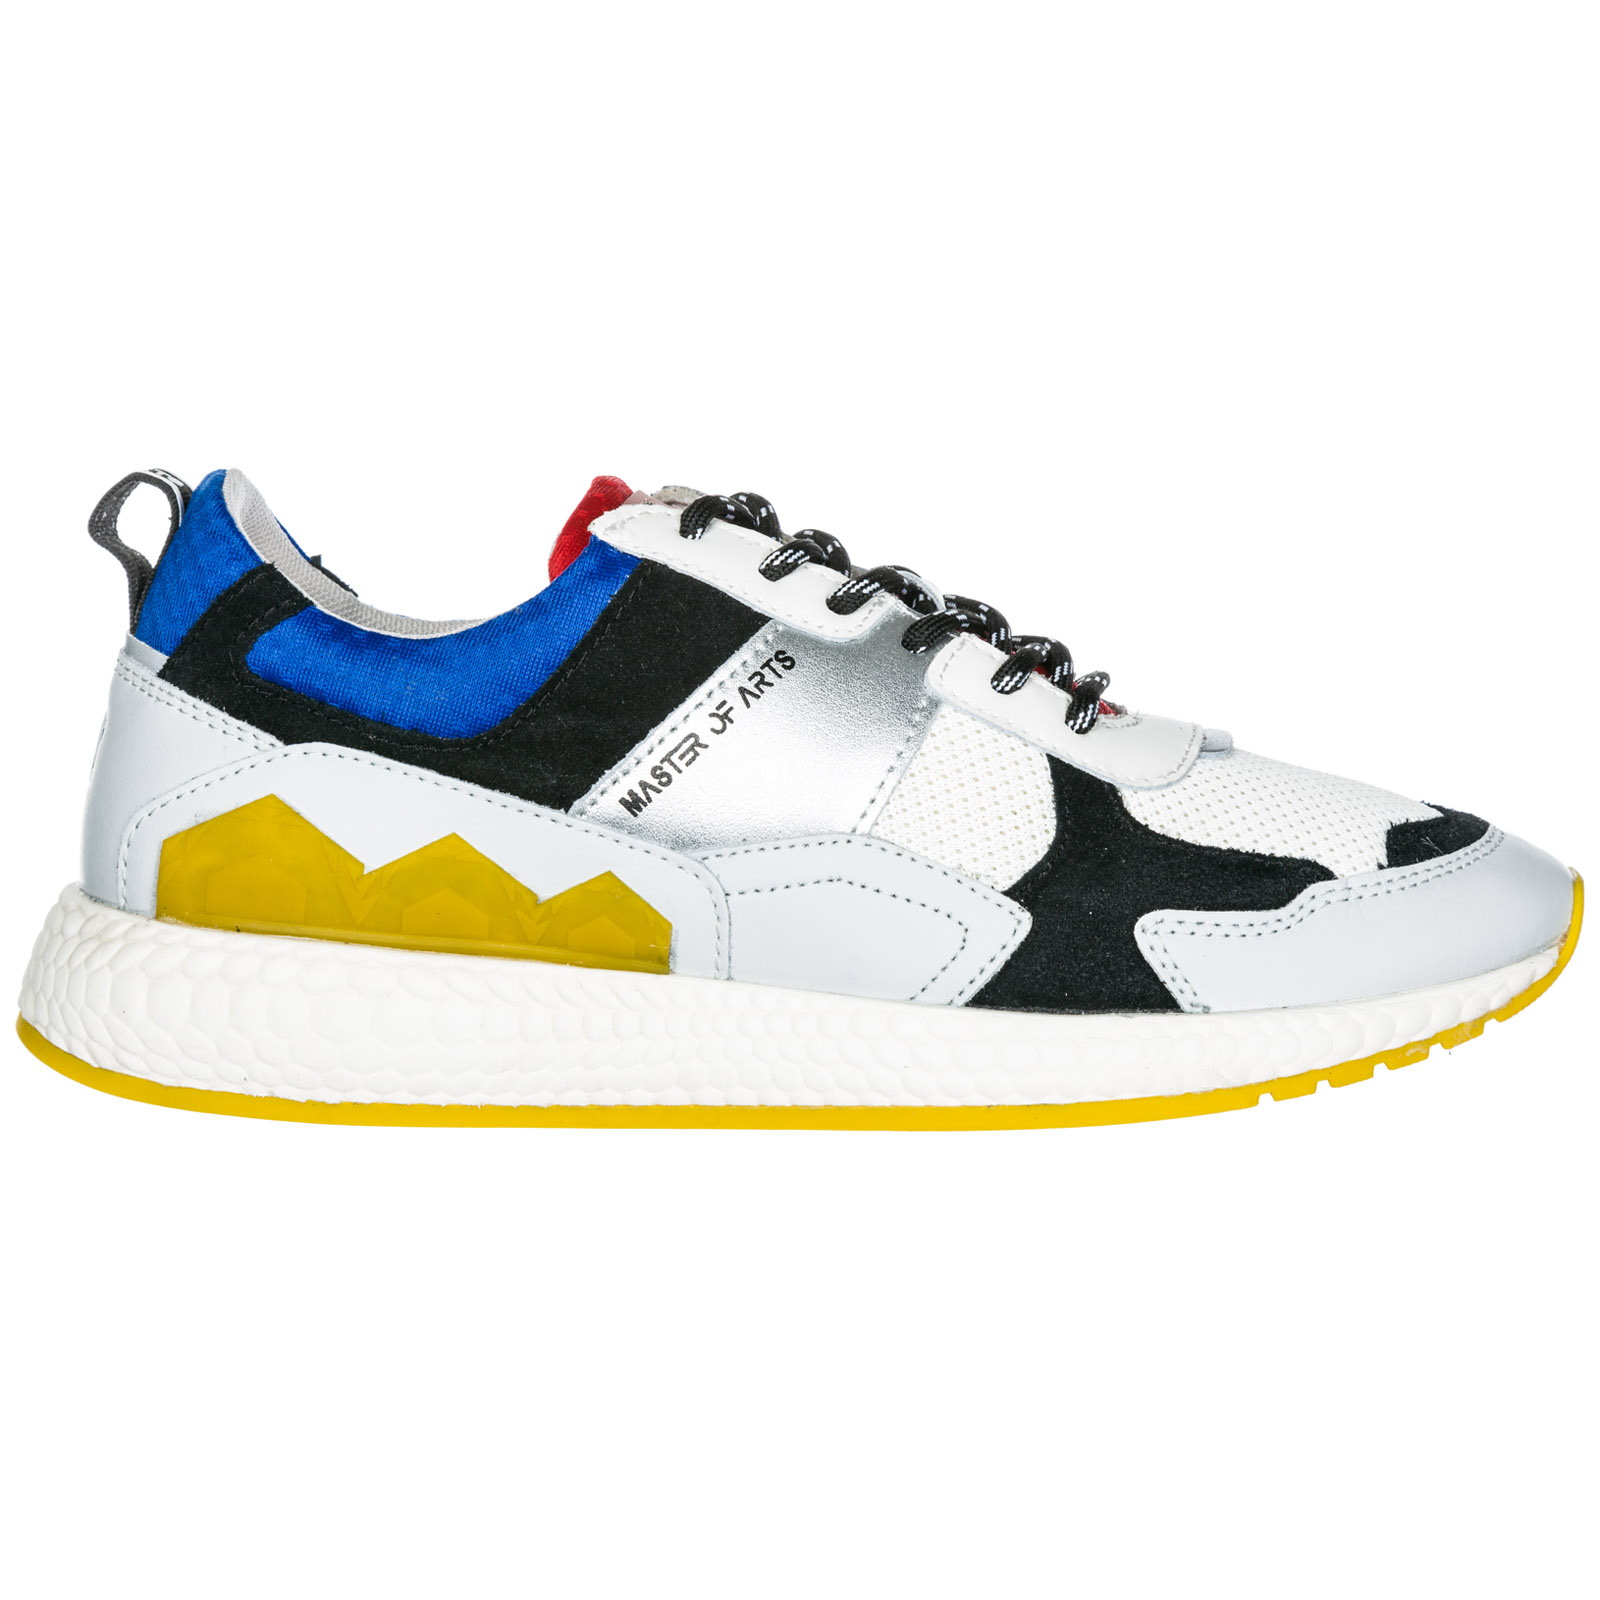 enorme sconto 76a3d 7d3c3 Men's shoes leather trainers sneakers futura